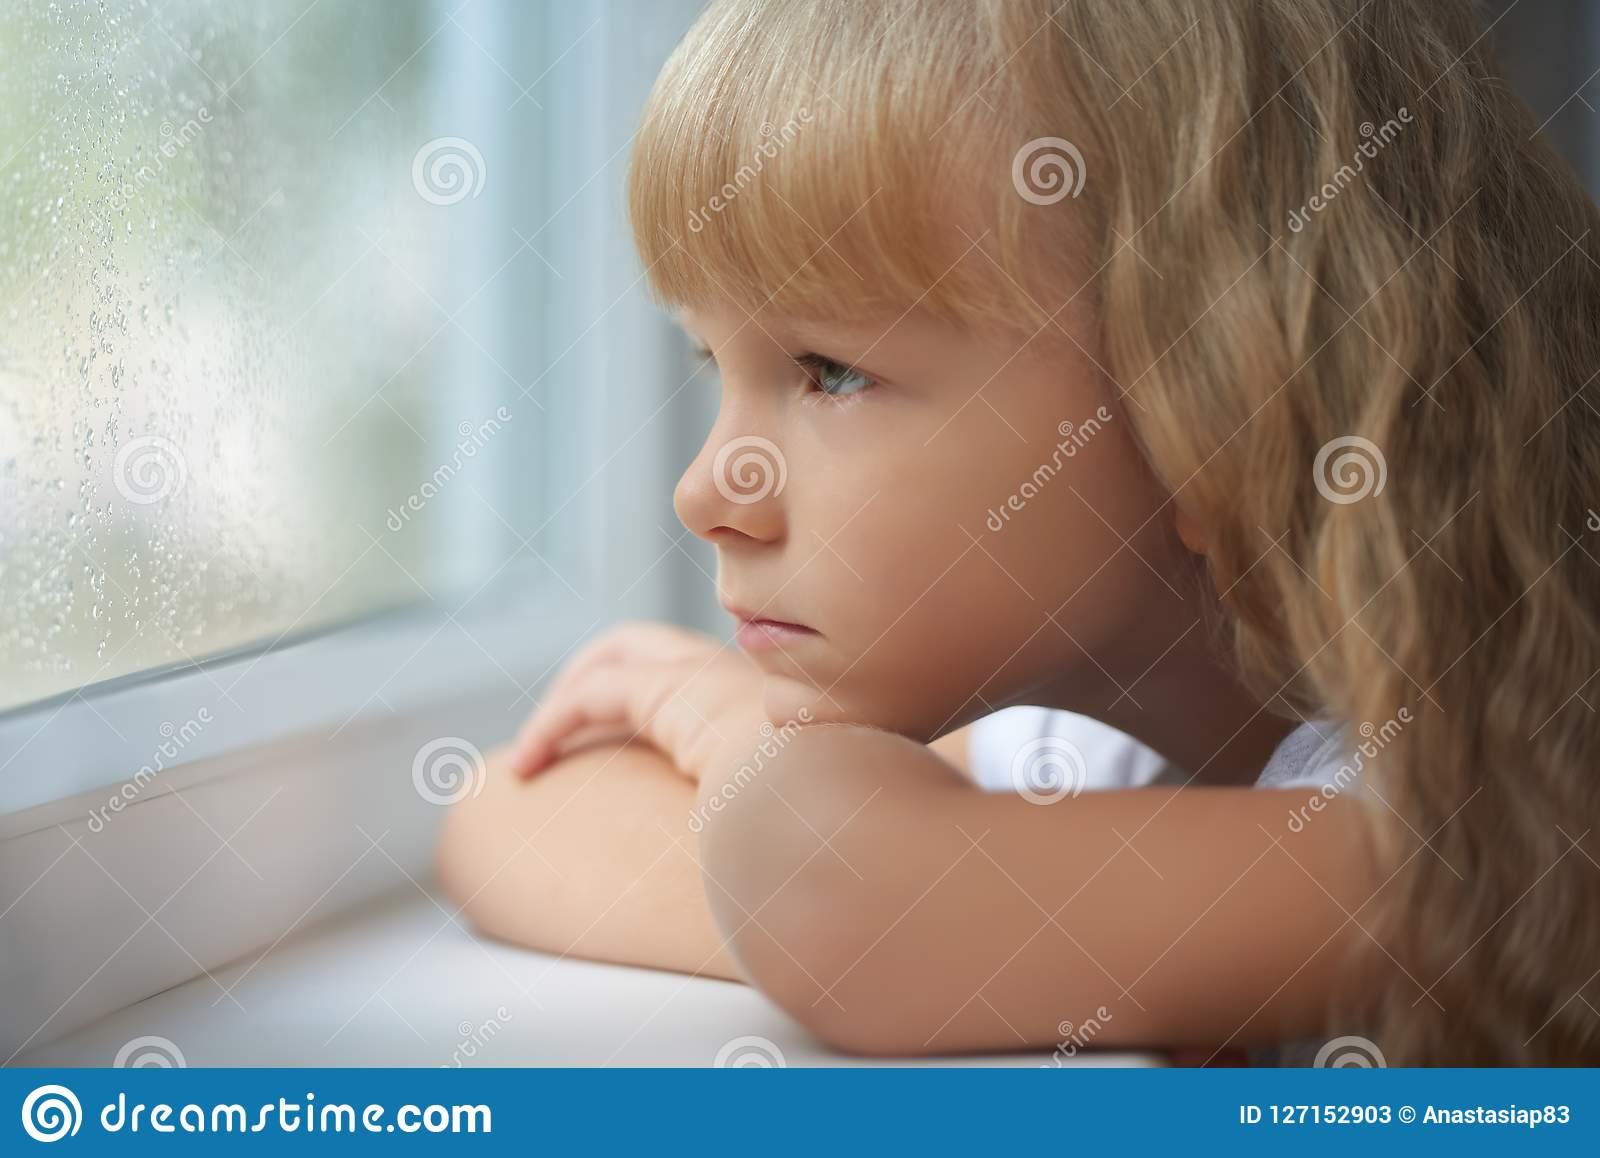 A girl looking out of the window on a rainy day